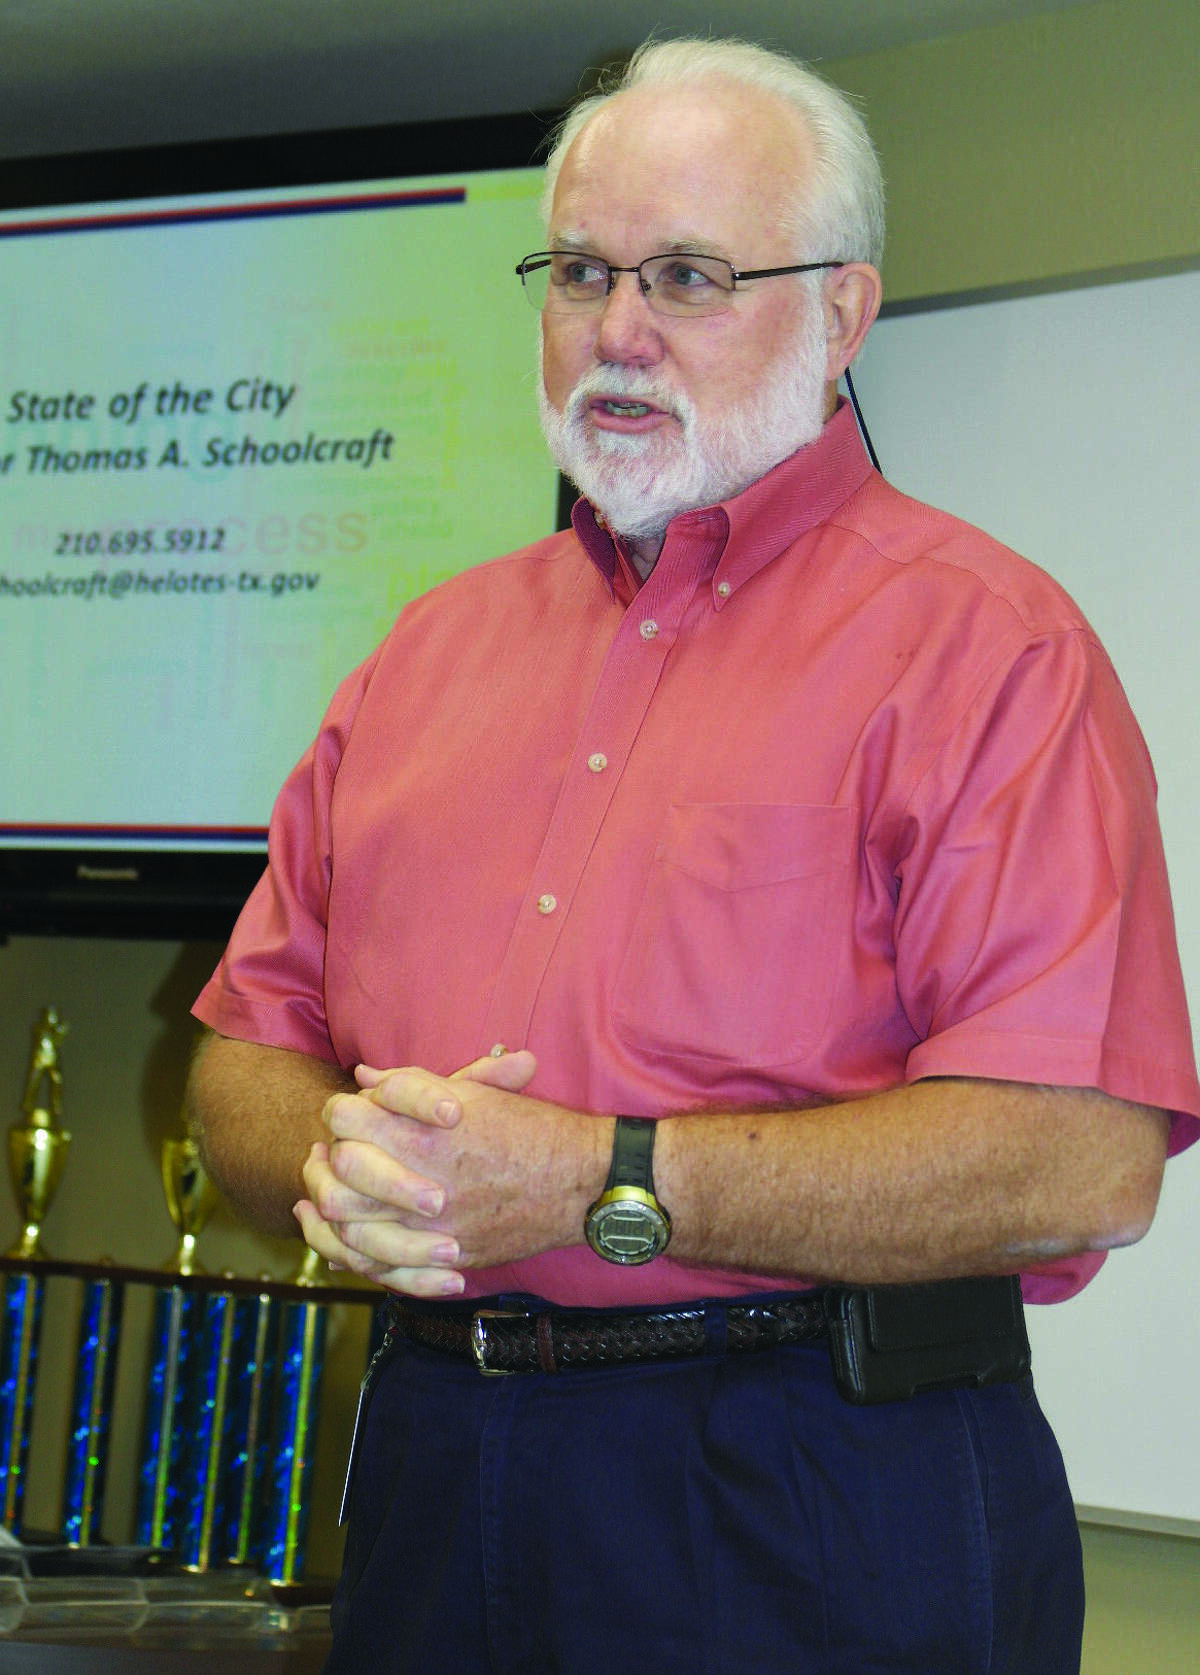 During his State of the City address, Helotes Mayor Tom Schoolcraft urges chamber members to get involved in community activities.